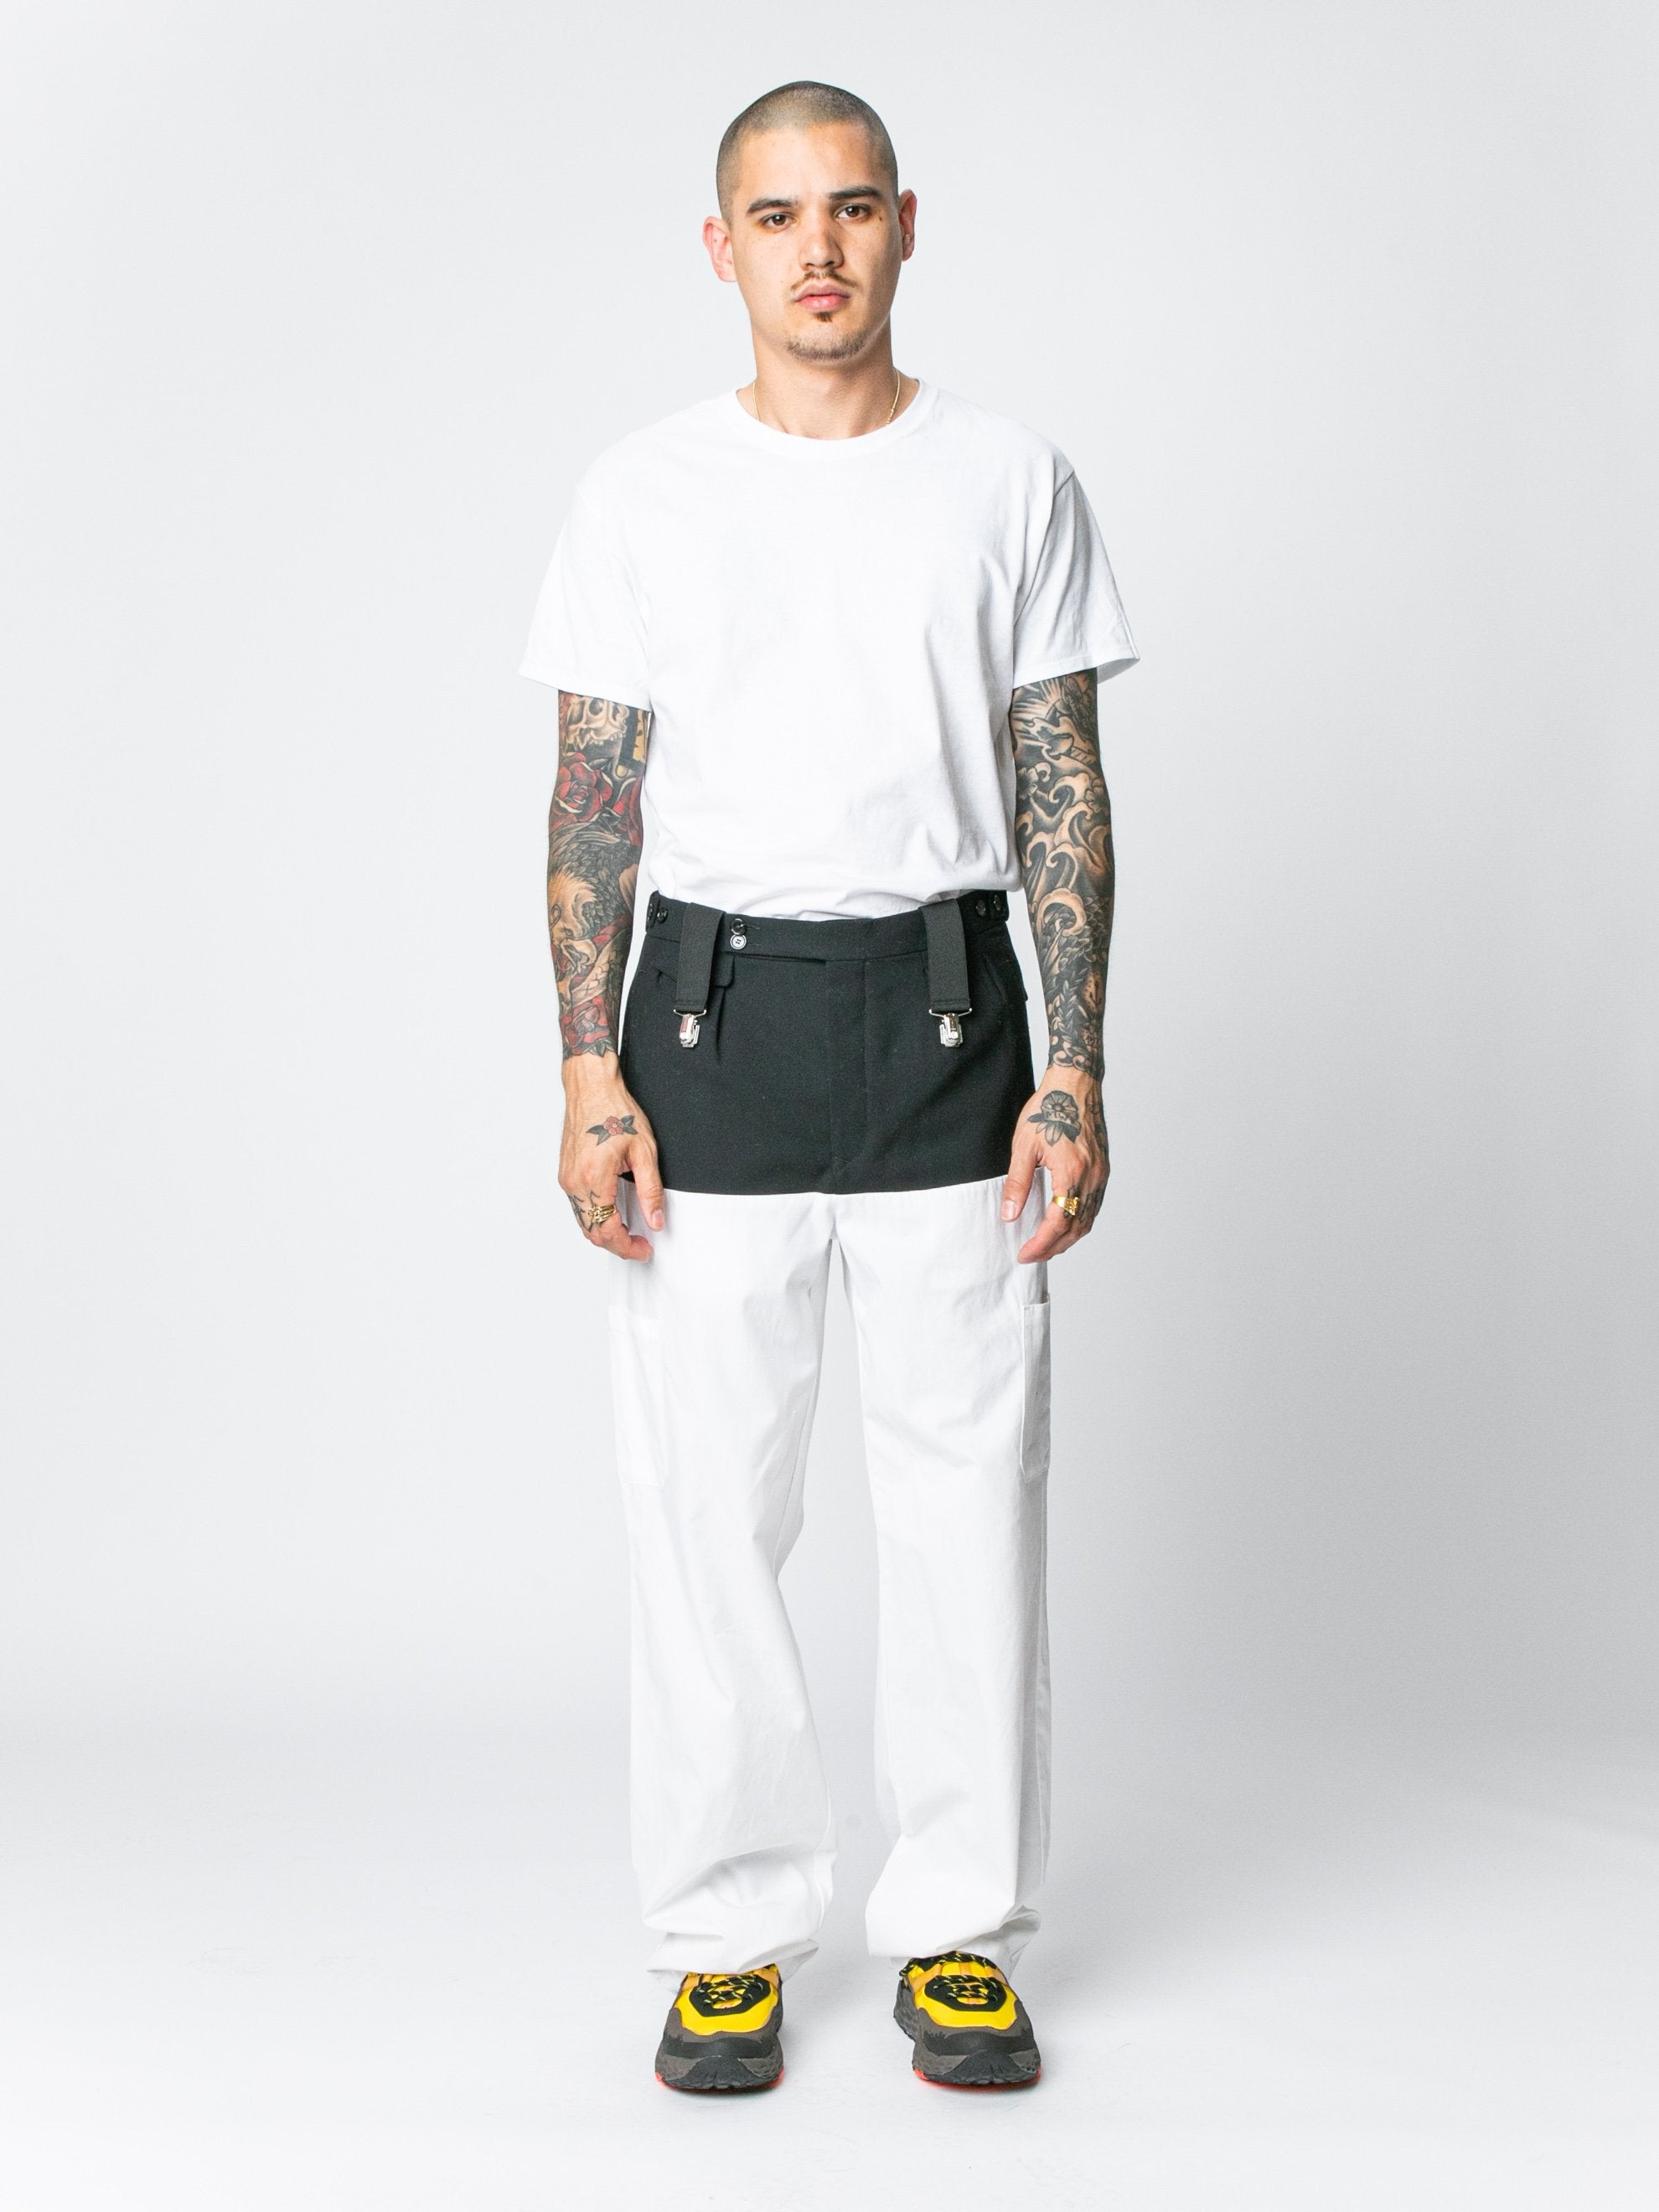 White / Navy Pants With Horizontal Cut Pockets & Suspenders 3